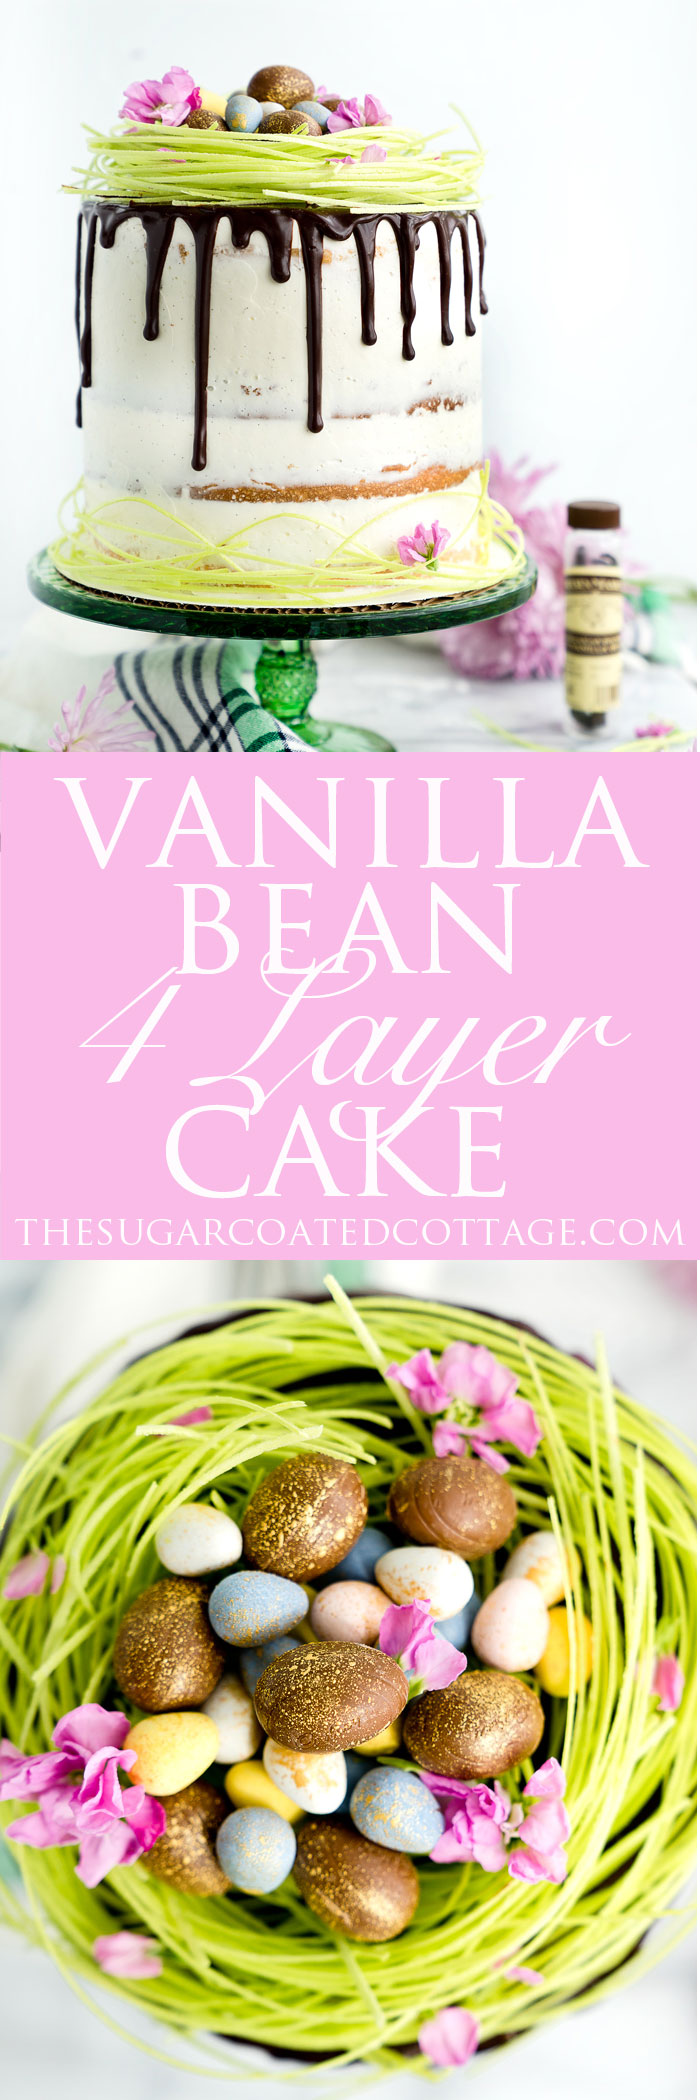 Vanilla Bean Layer Cake Recipe. 4 layers of the best vanilla bean enhanced cake smothered in a layer of vanilla bean buttercream. Perfect cake recipe for any occasion including birthdays, Easter, 4th of July, Christmas. | thesugarcoatedcottage.com